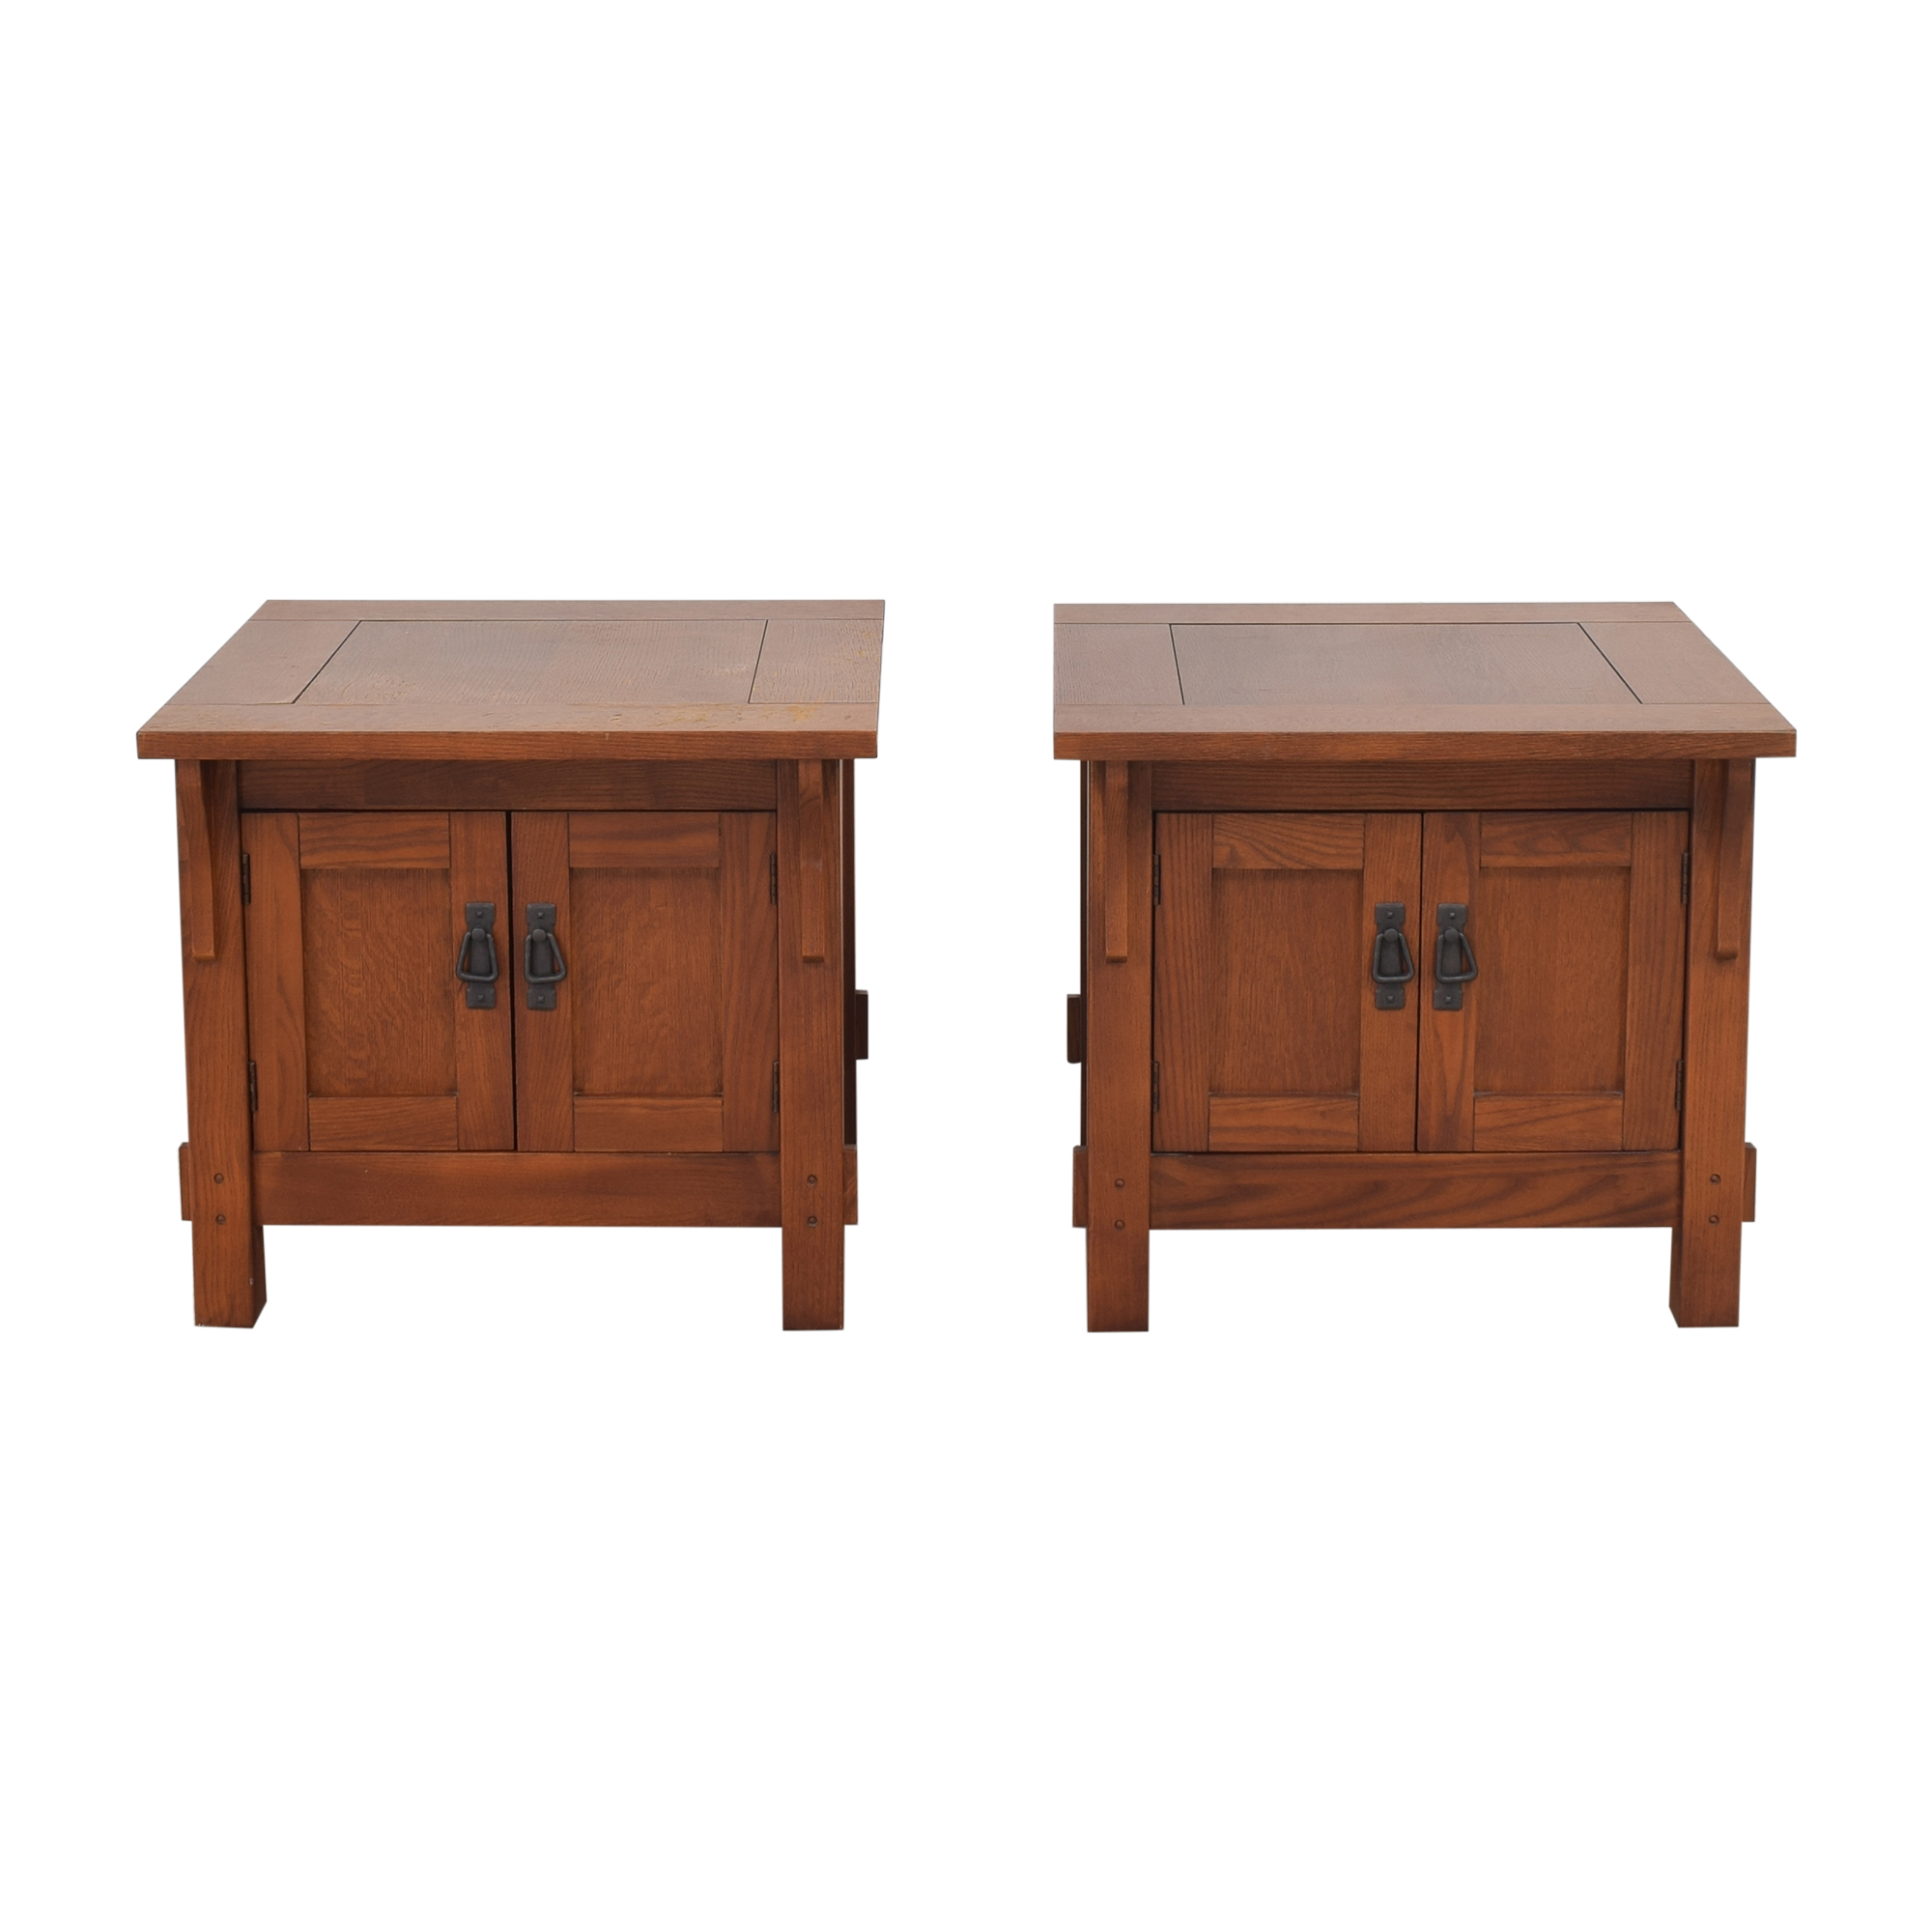 Bassett Furniture Bassett Furniture Two Door End Tables ct